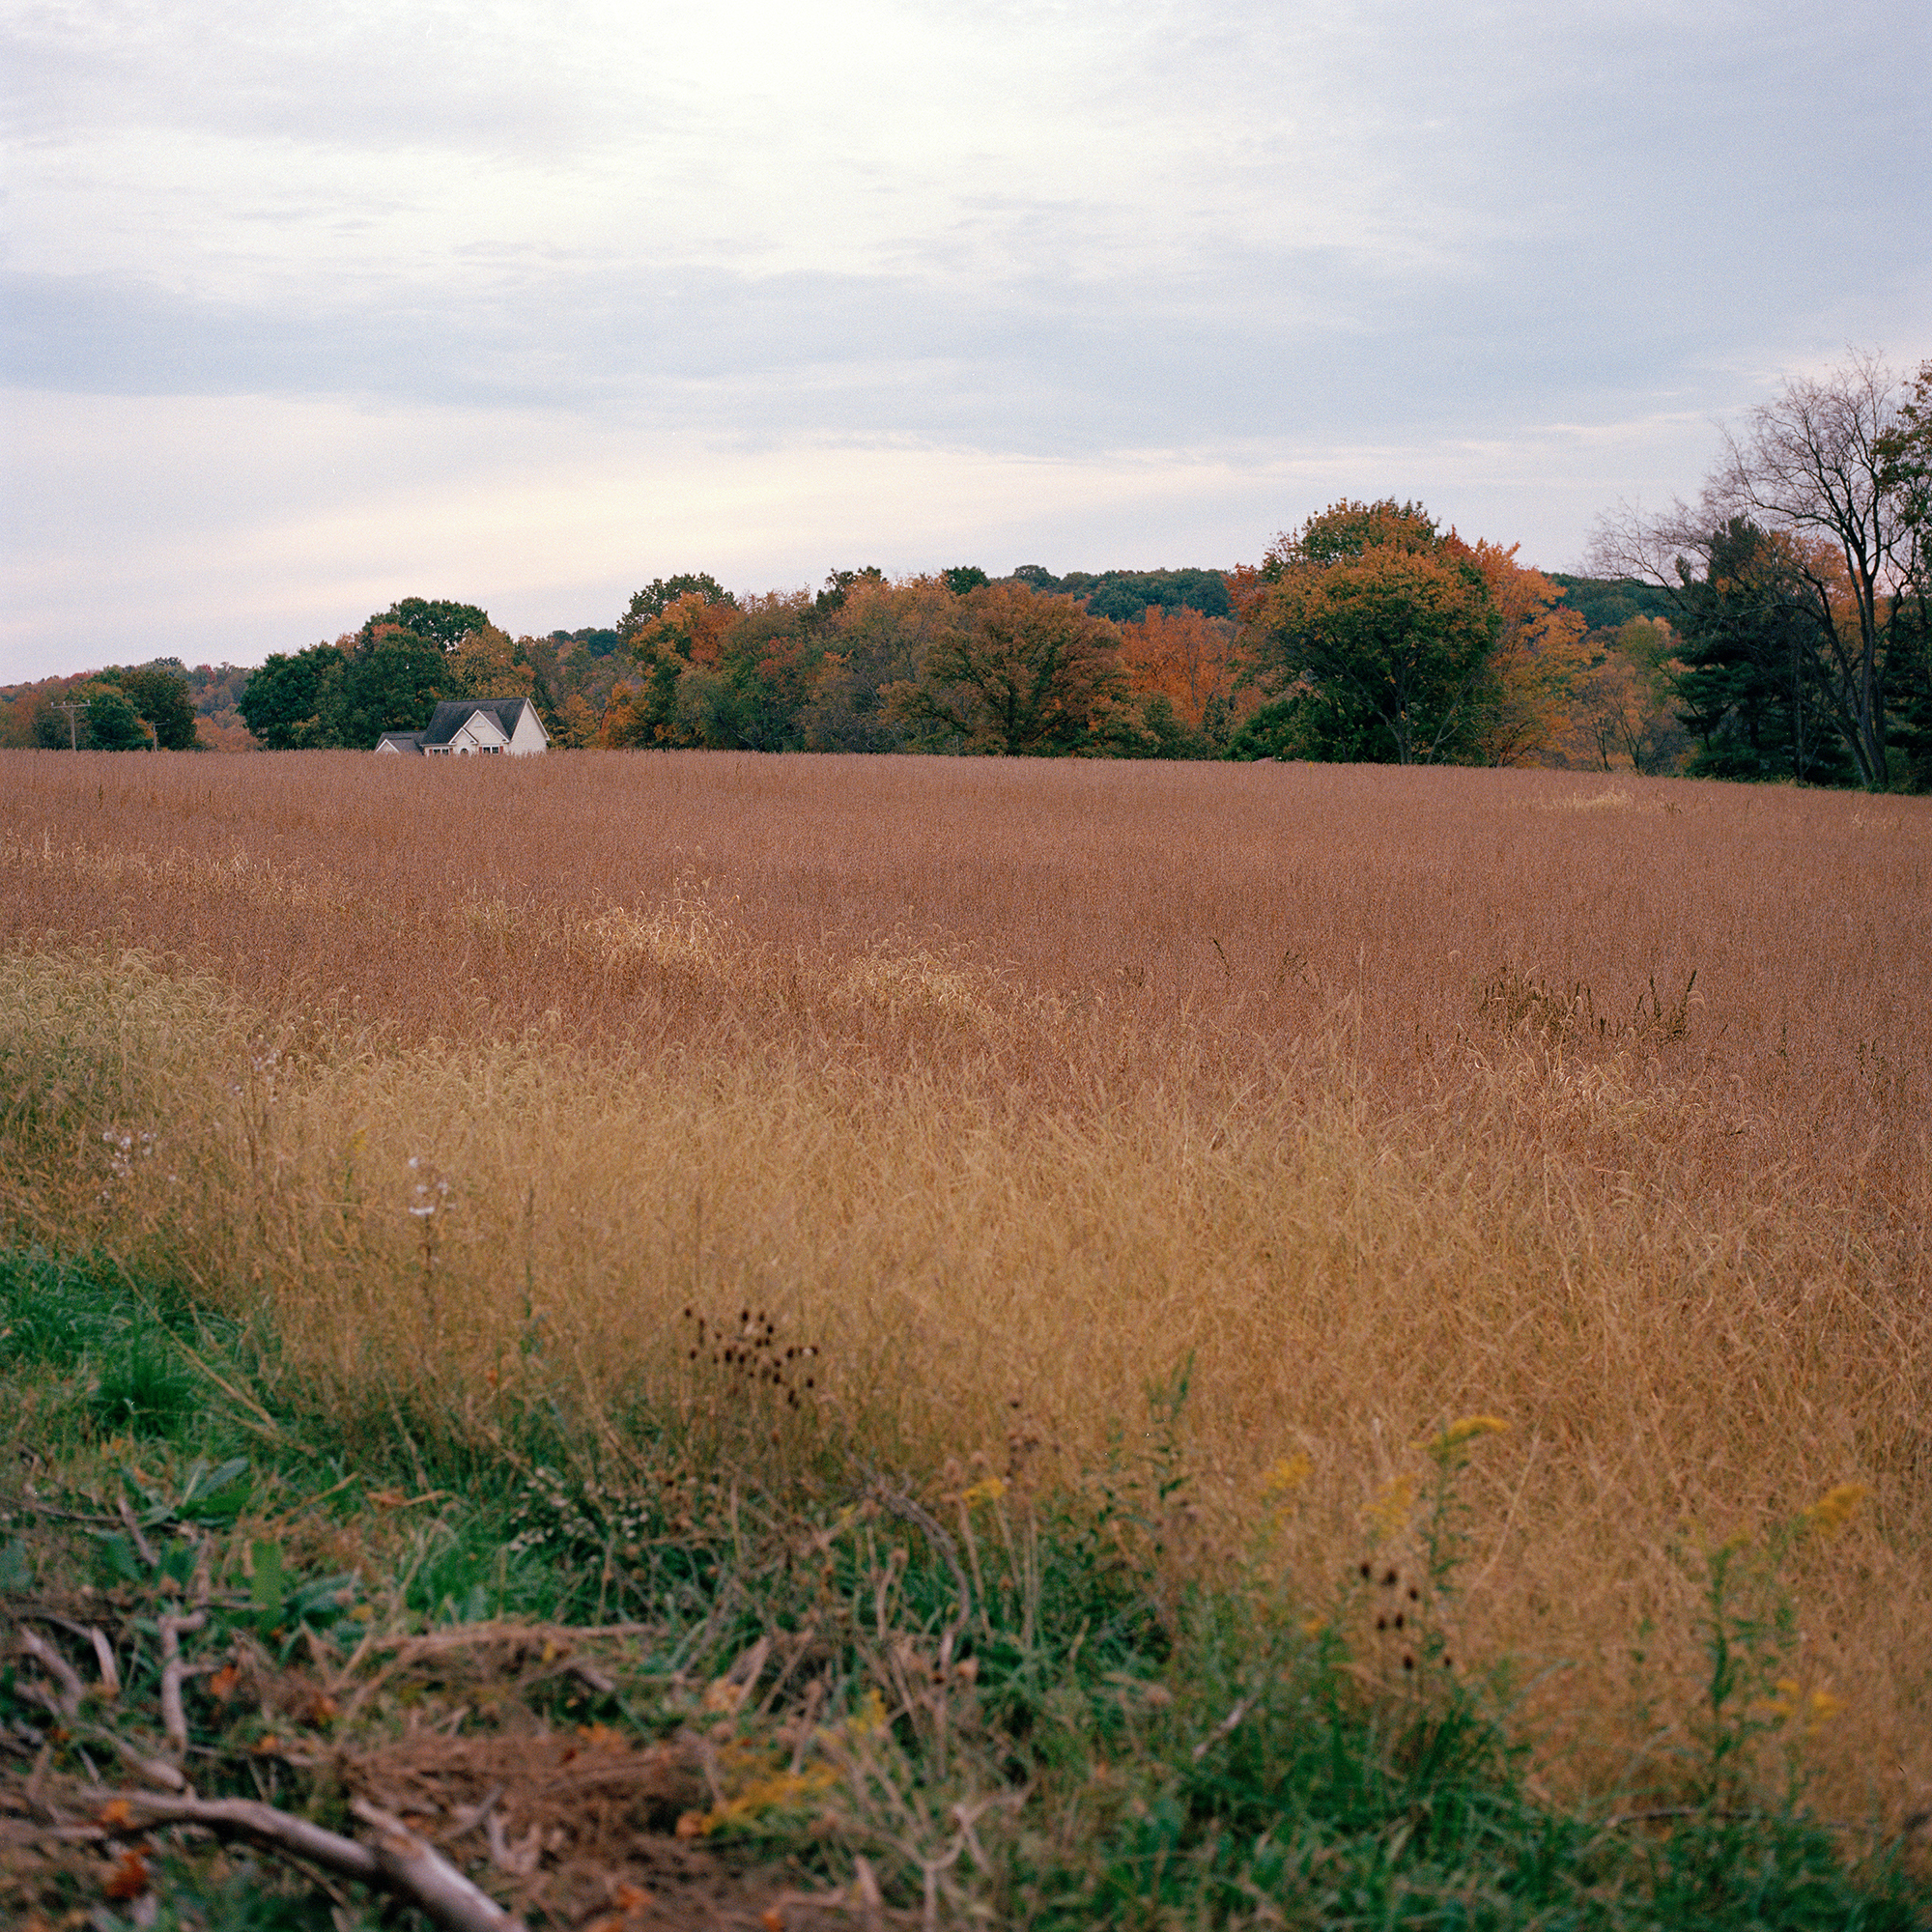 A home along the horizon of a field in fall